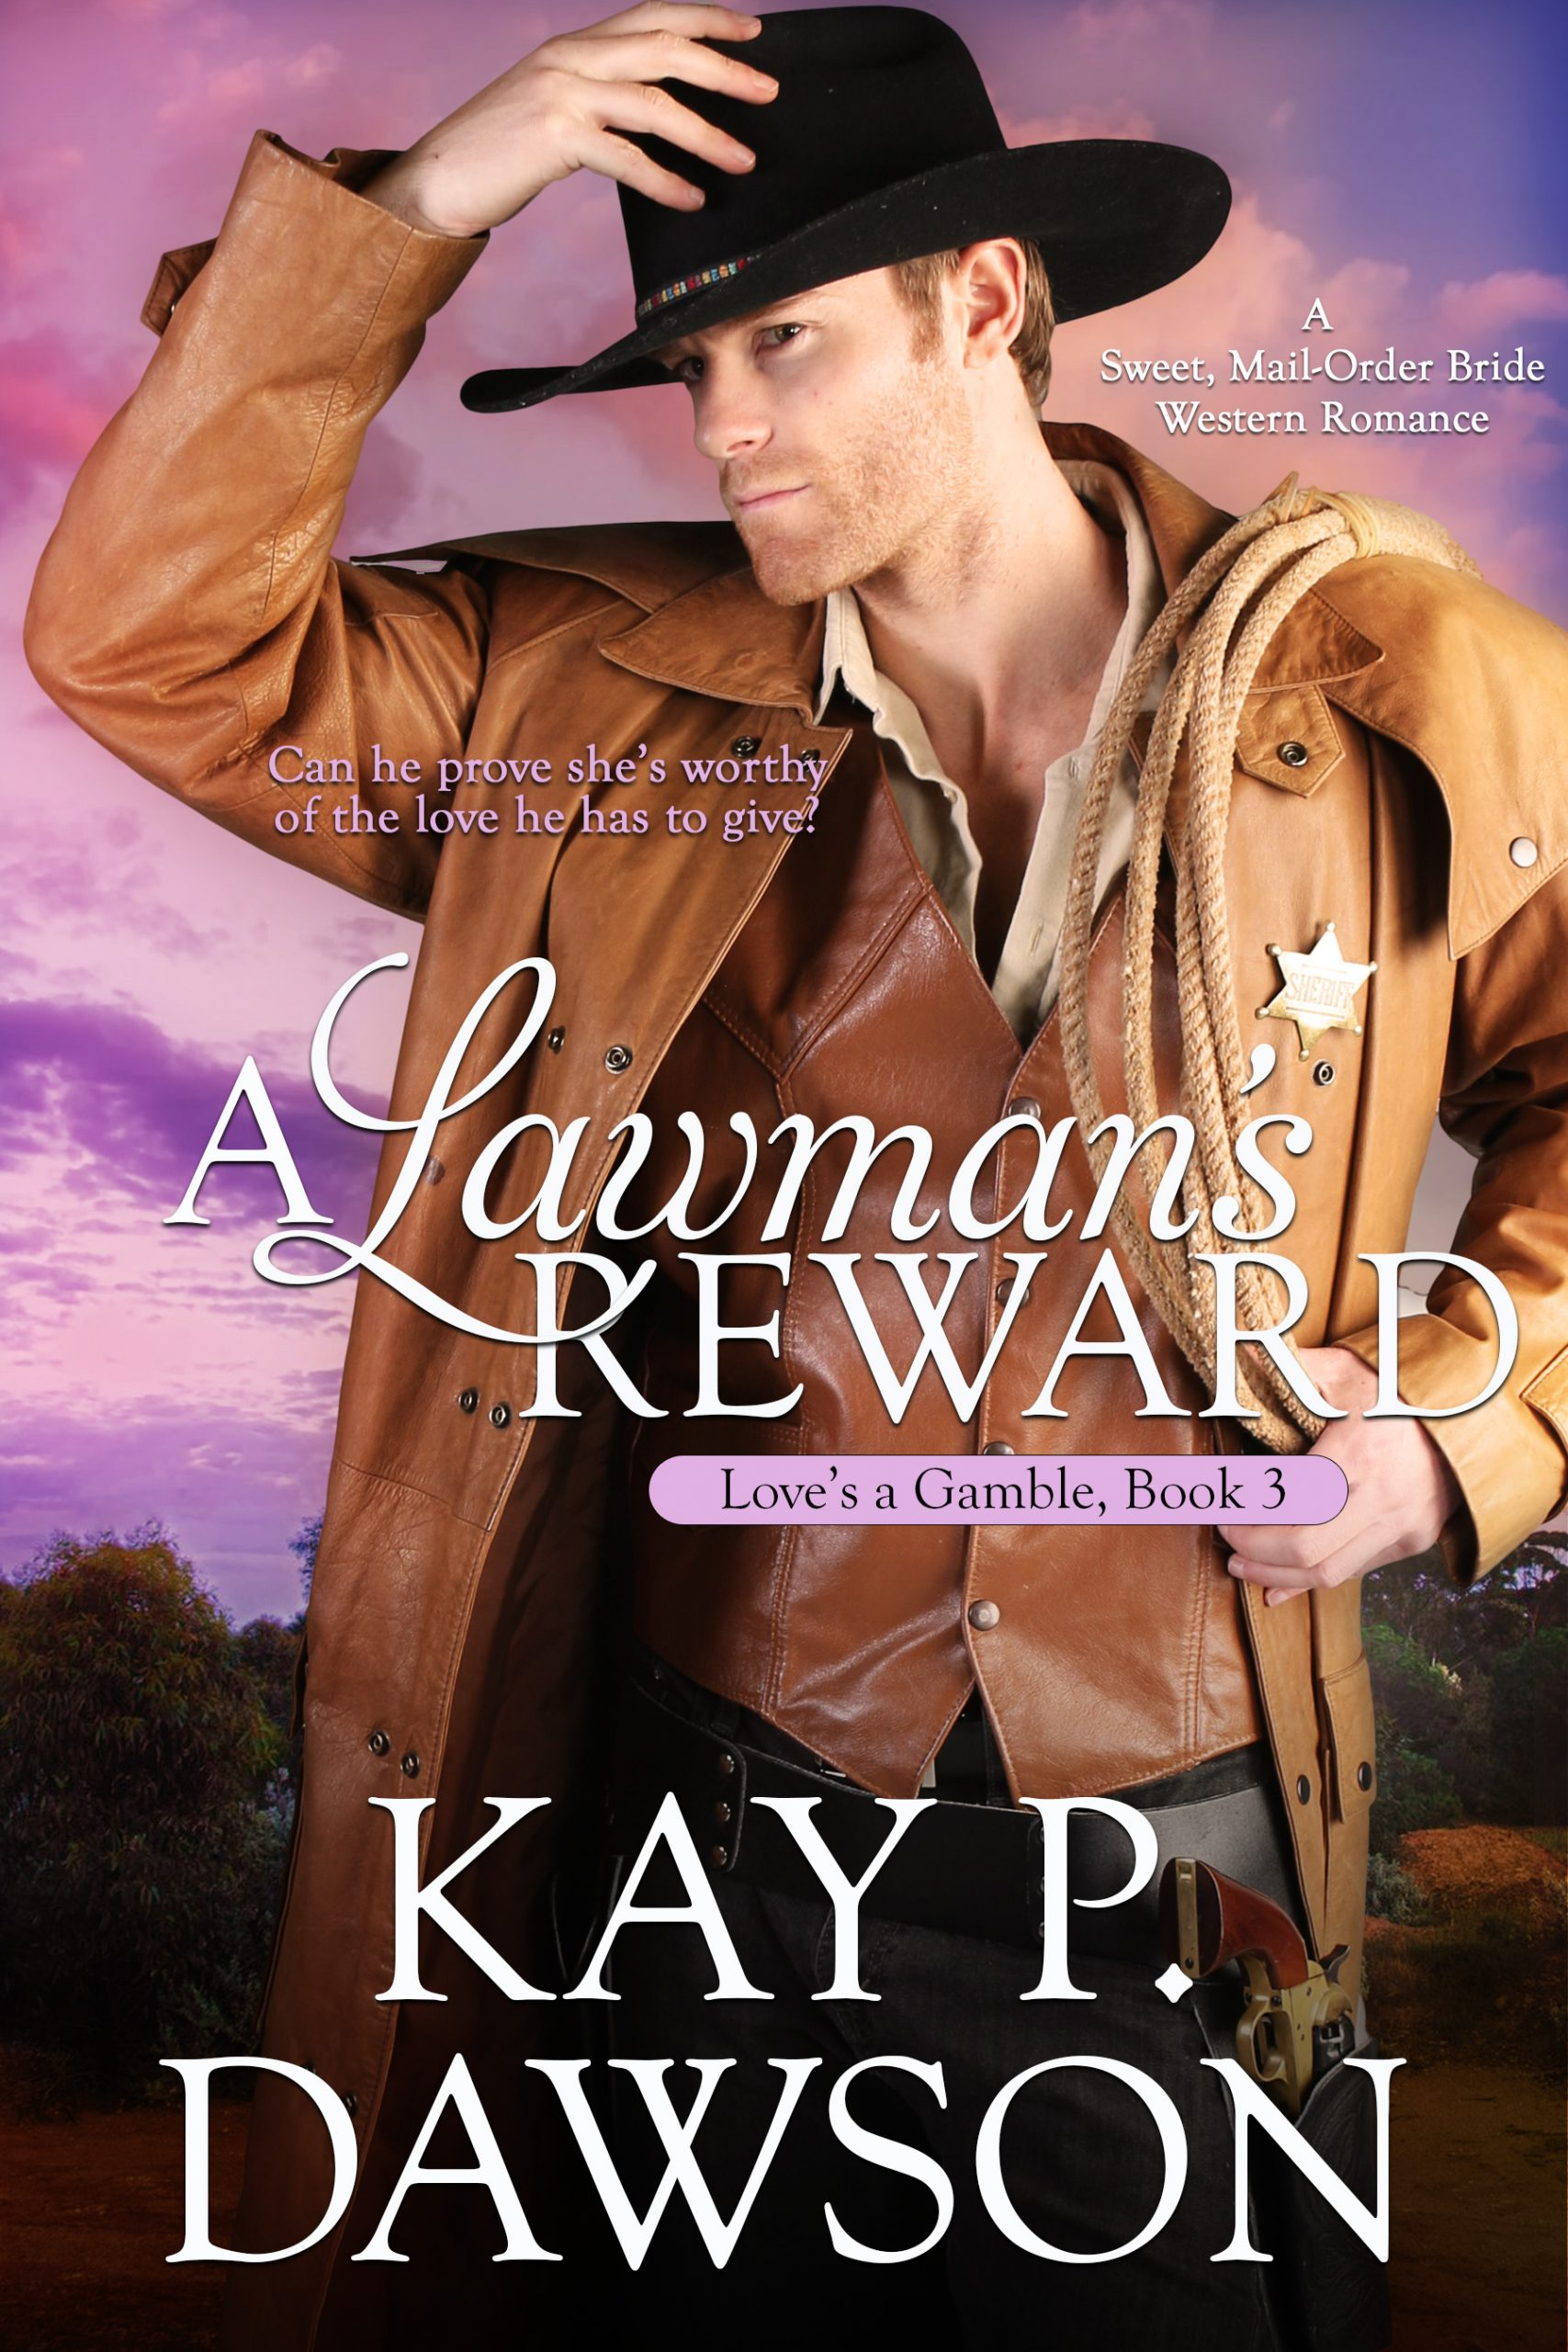 A Lawman's Reward - Love's a Gamble Series